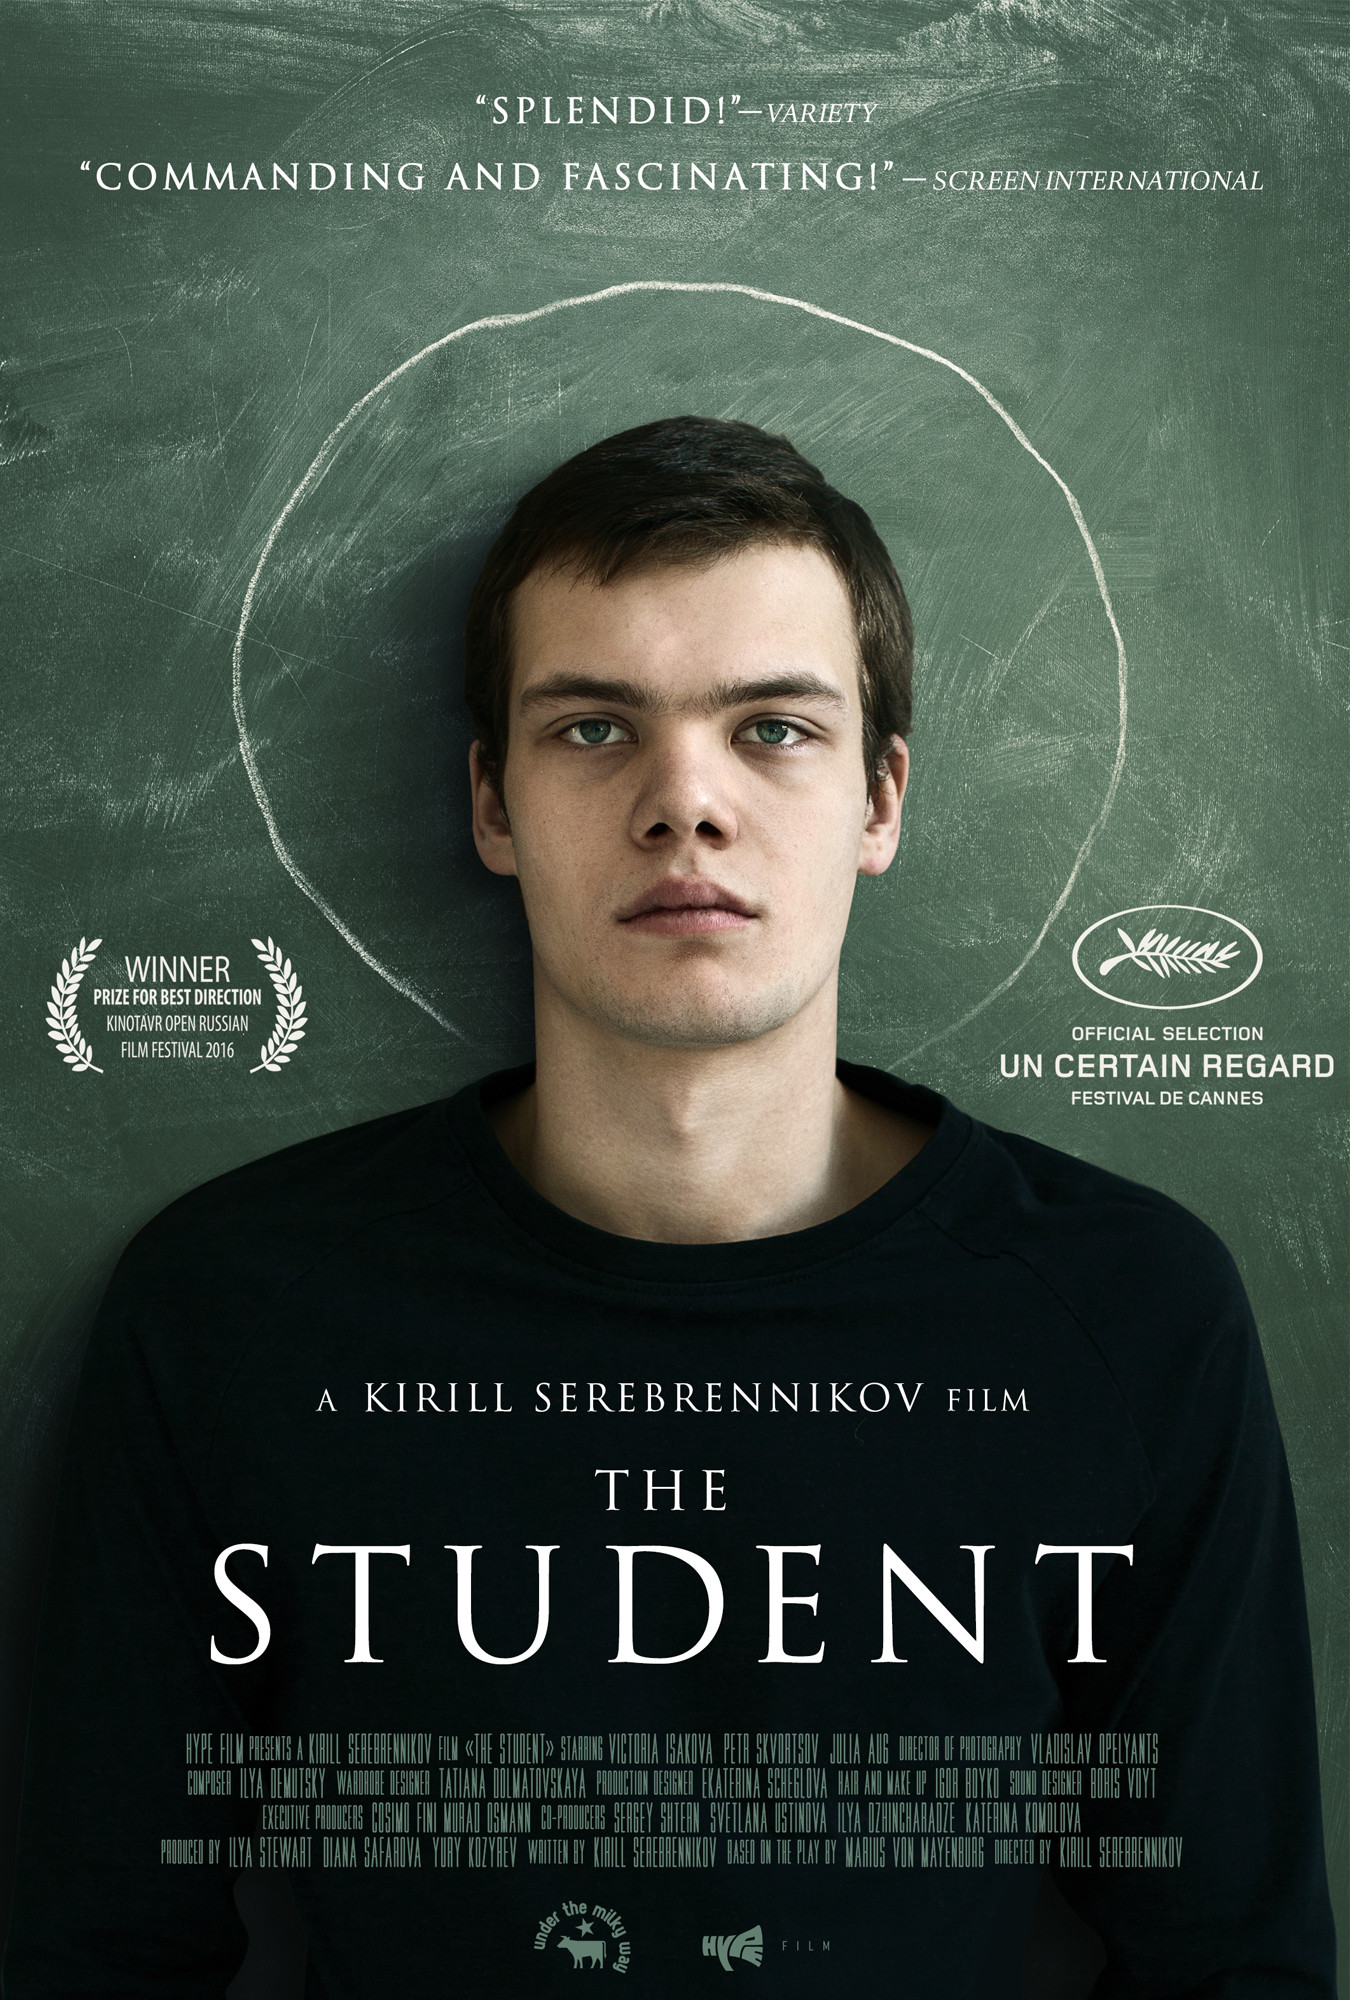 The Student (2017) Details and Credits - Metacritic